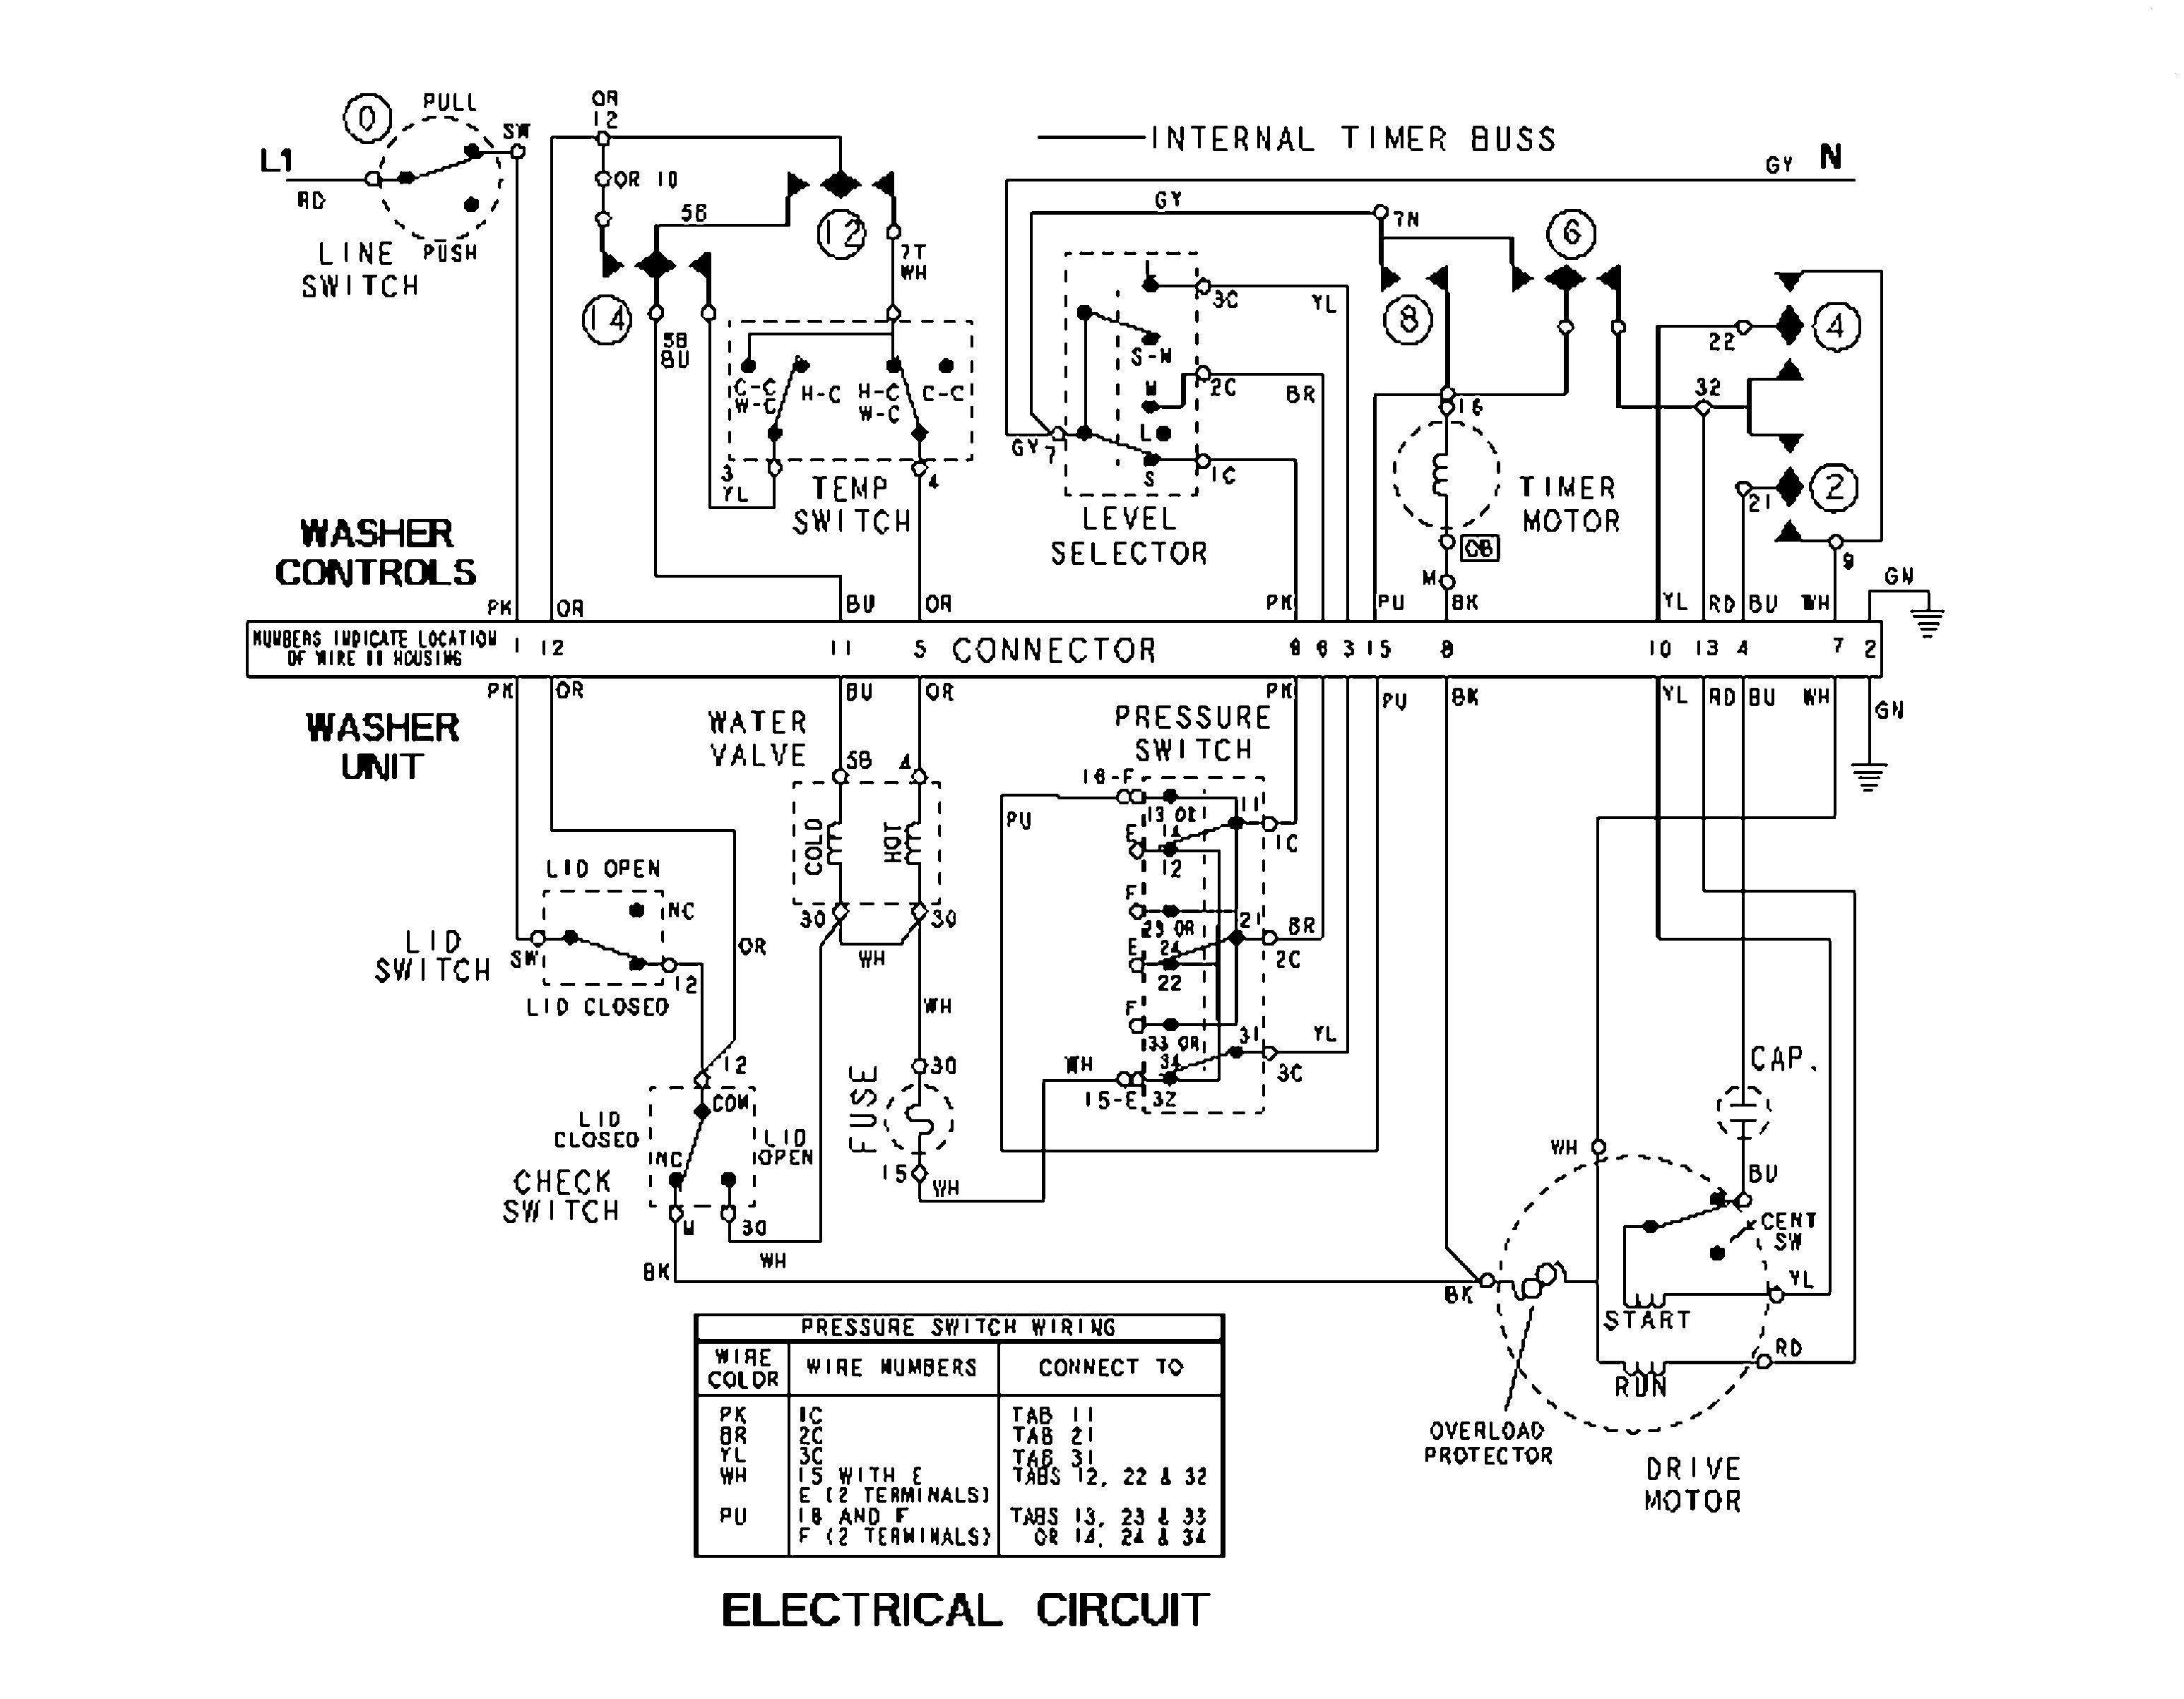 Wiring Diagram Likewise Ruud Air Conditioner Trane Air